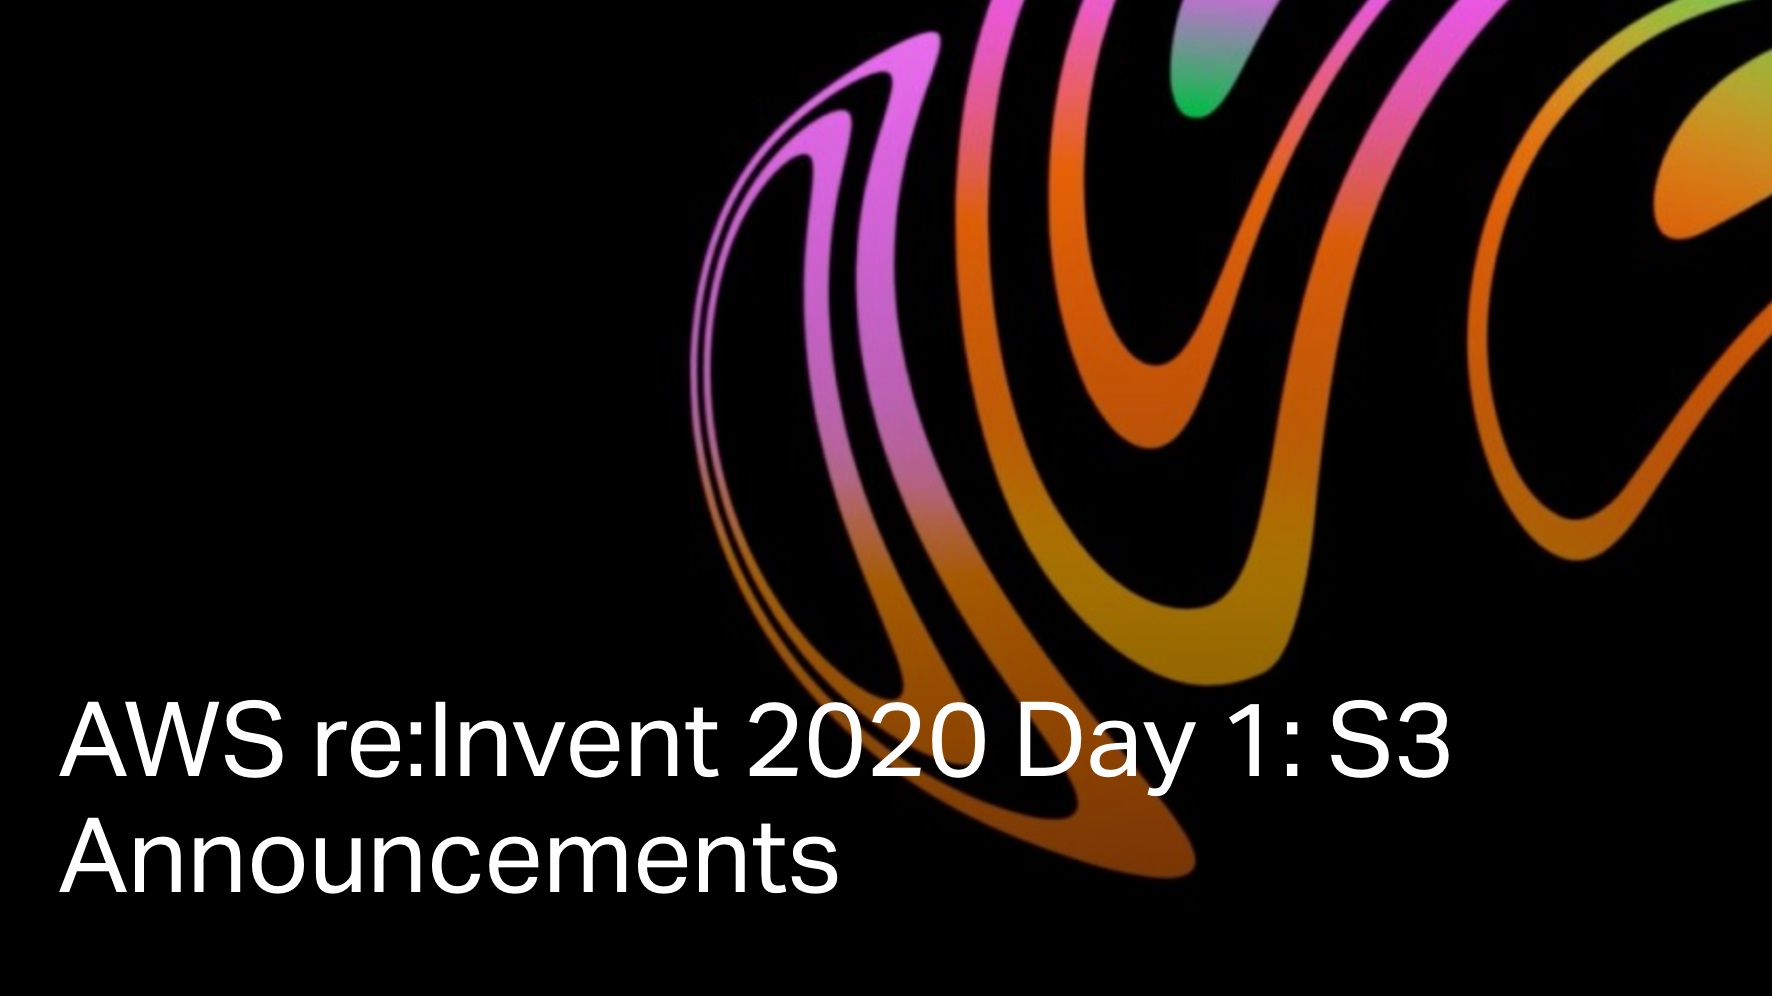 AWS re:Invent 2020 Day 1: S3 Announcements